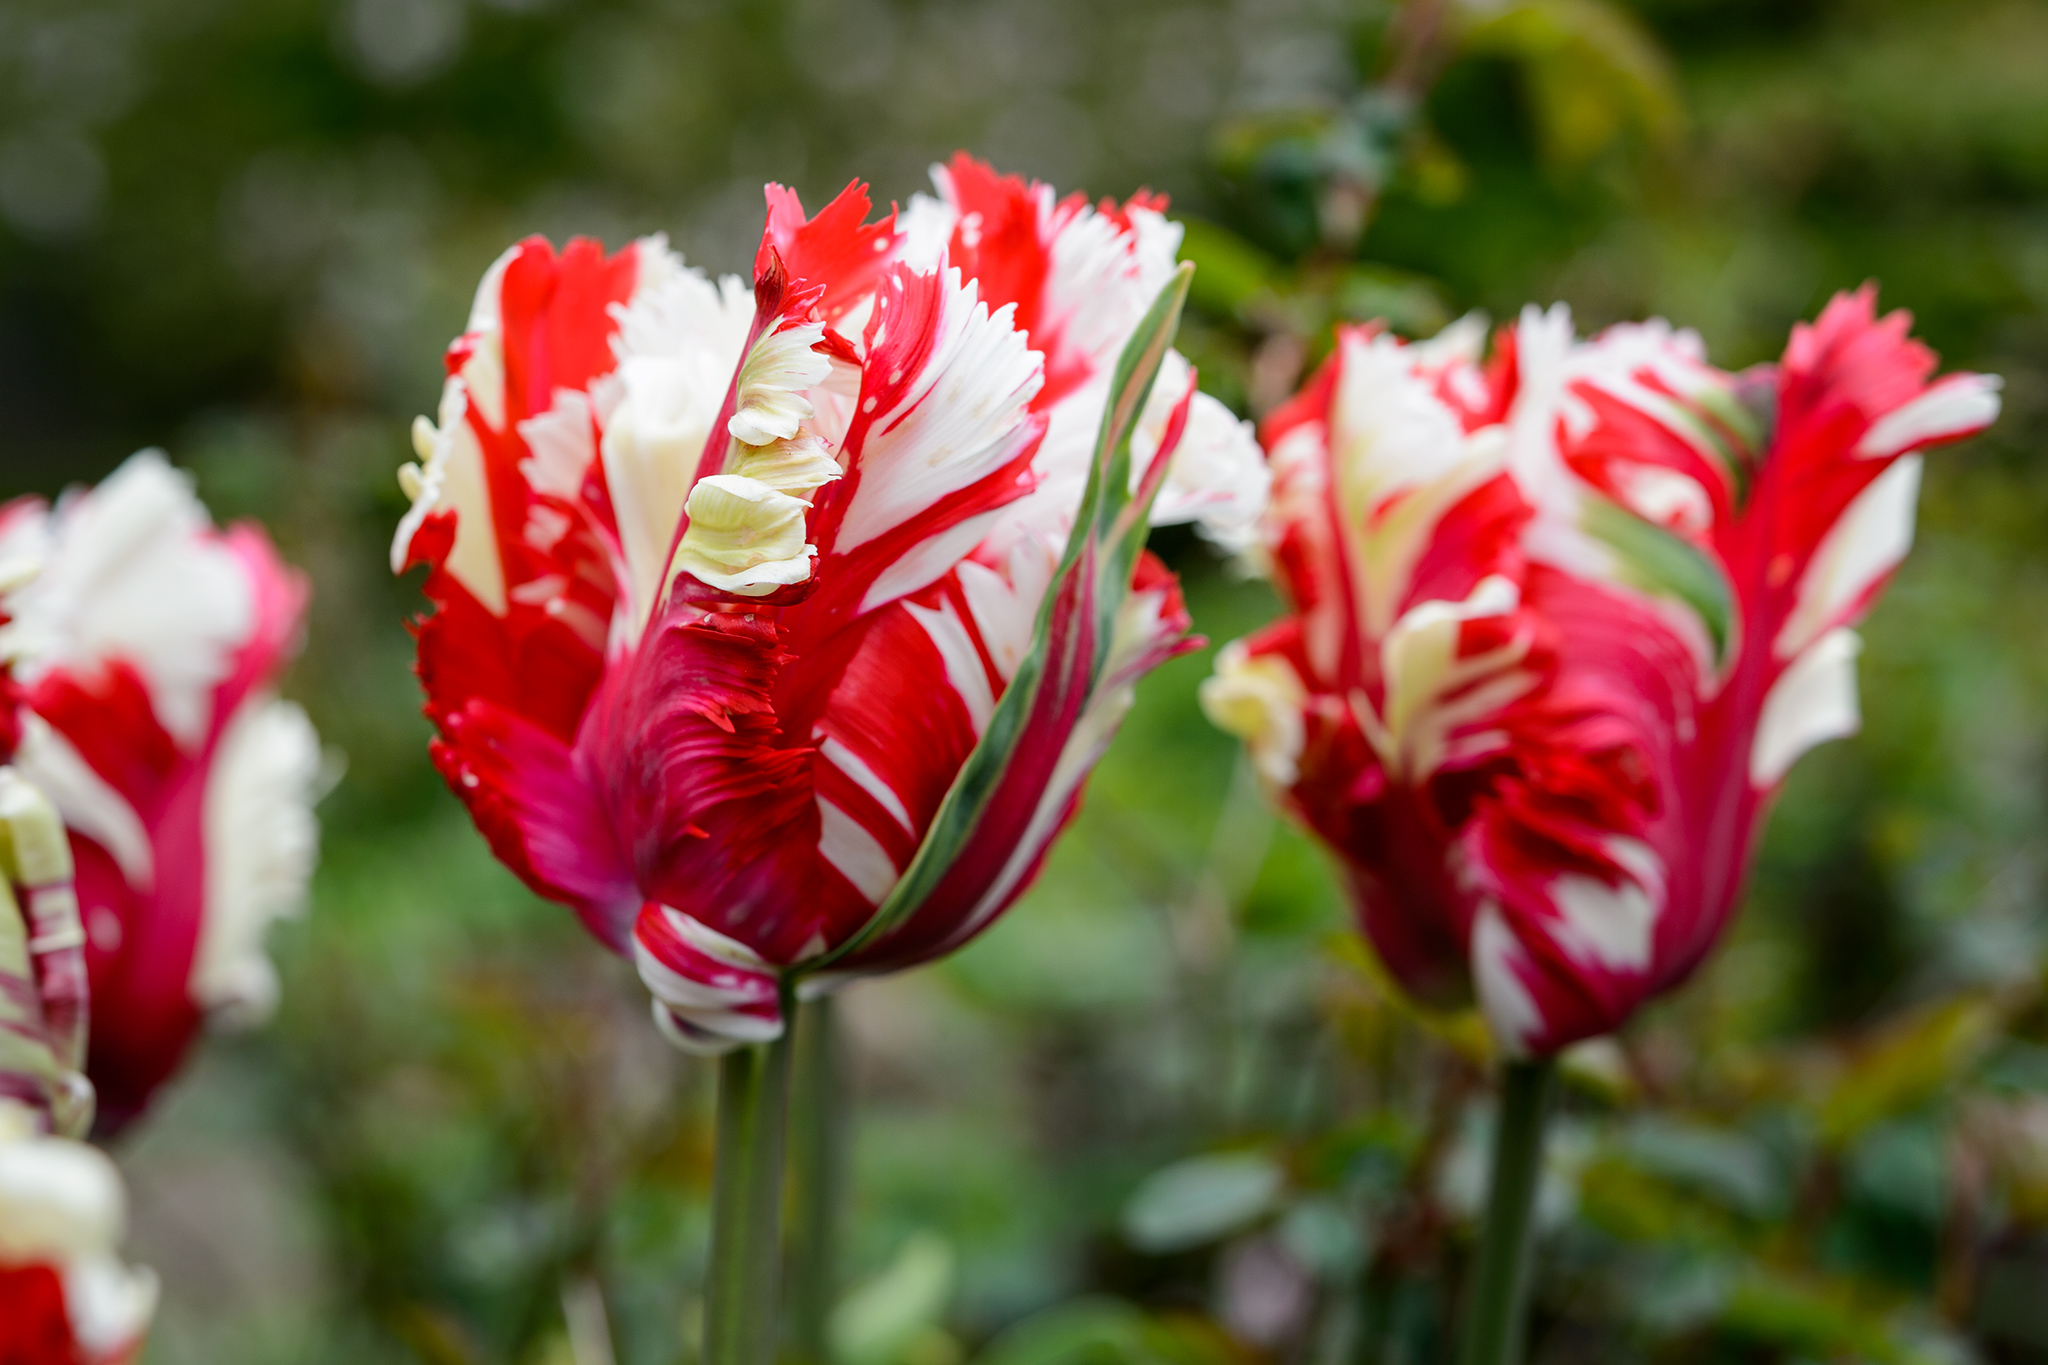 Parrot and fringed tulips to grow